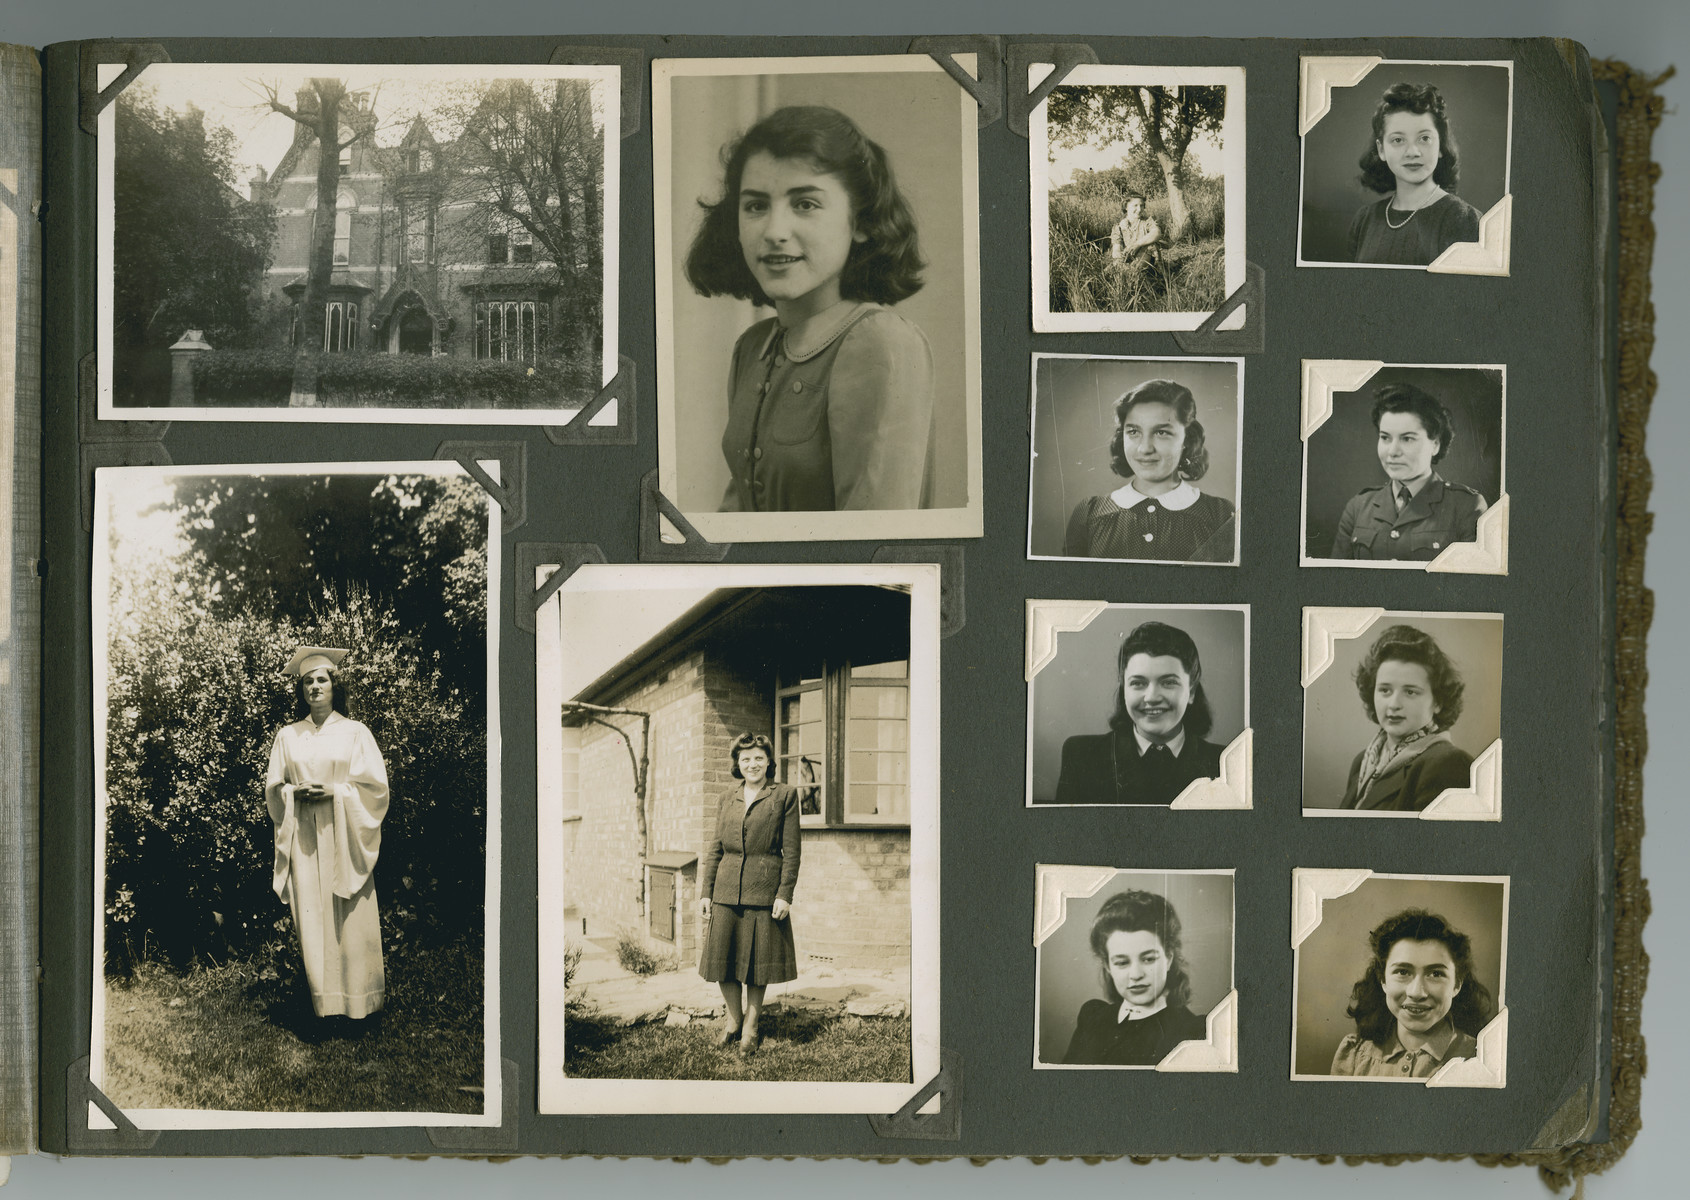 Photo album page of girls in the Jewish Refugee Hostel 34 Wheeleys Road, Edgbaston, Birmingham.  The house was only a few streets away from Neville Chamberlain's home and was donated to the Refugee Committee by a Jewish family.    Photos are of girls who lived there in the 1940's:  Marion Kronenberg (later lived in Washington Heights, N.Y.) Next(Lilo)Liselotte Marcus, Herta Jokel (Wien), Fritzi Landes, Gisela Kaufmann (later Zanders), Sonja Goldmann (later Hancock), Marianne ?, Ruth Meier, Margot Glass and Lilly Cohen (later Kasha, wearing high school graduation gown), and Hermine (Mimi) Reisner (later Bergwein, wearing the suit) who was the assistant to the Hostel Matron.